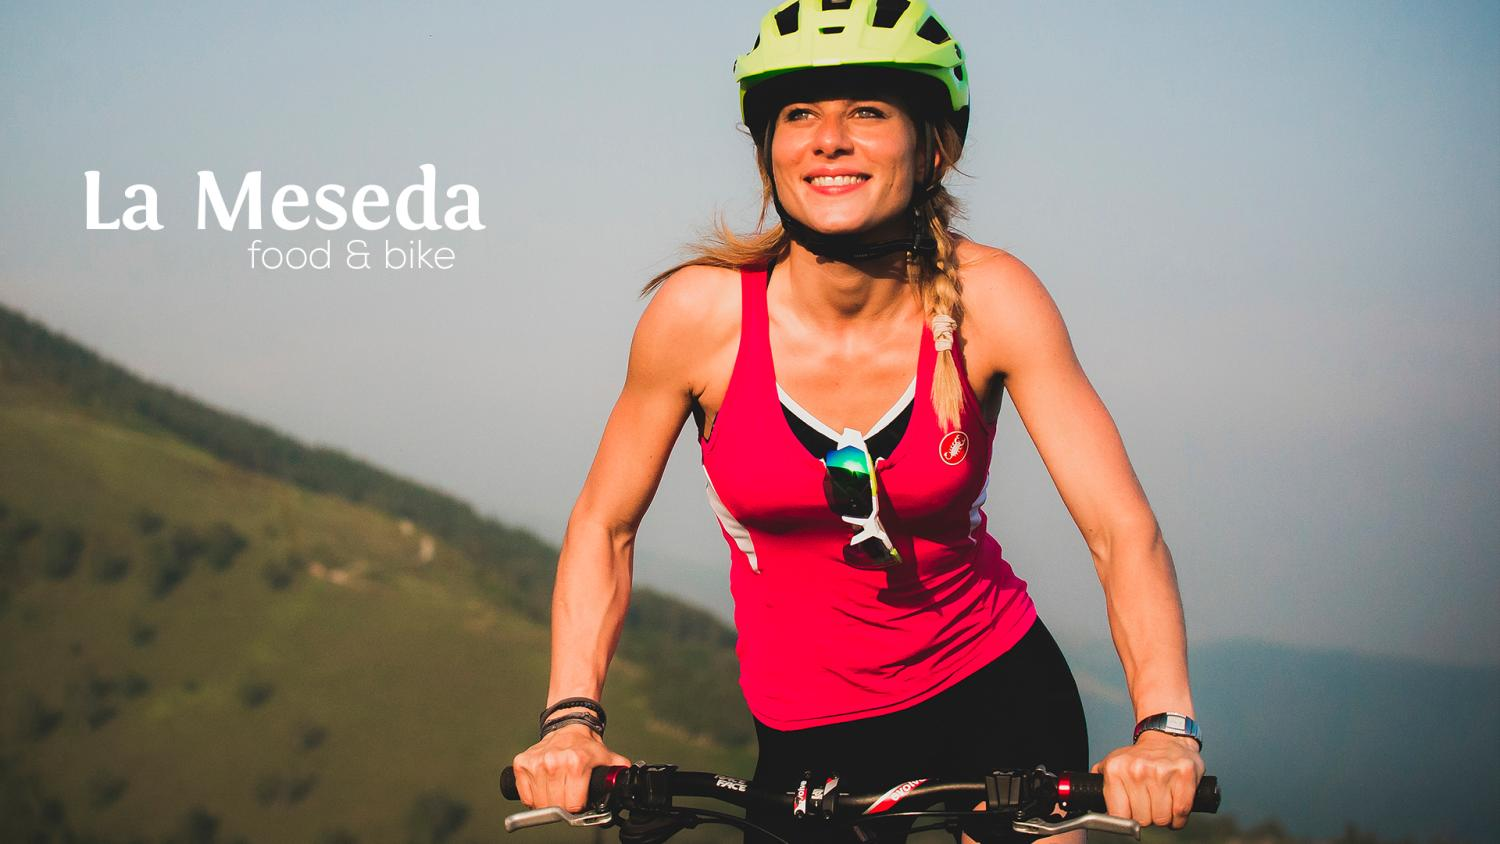 "<b>La Meseda ""food &amp; bike"" </b>"